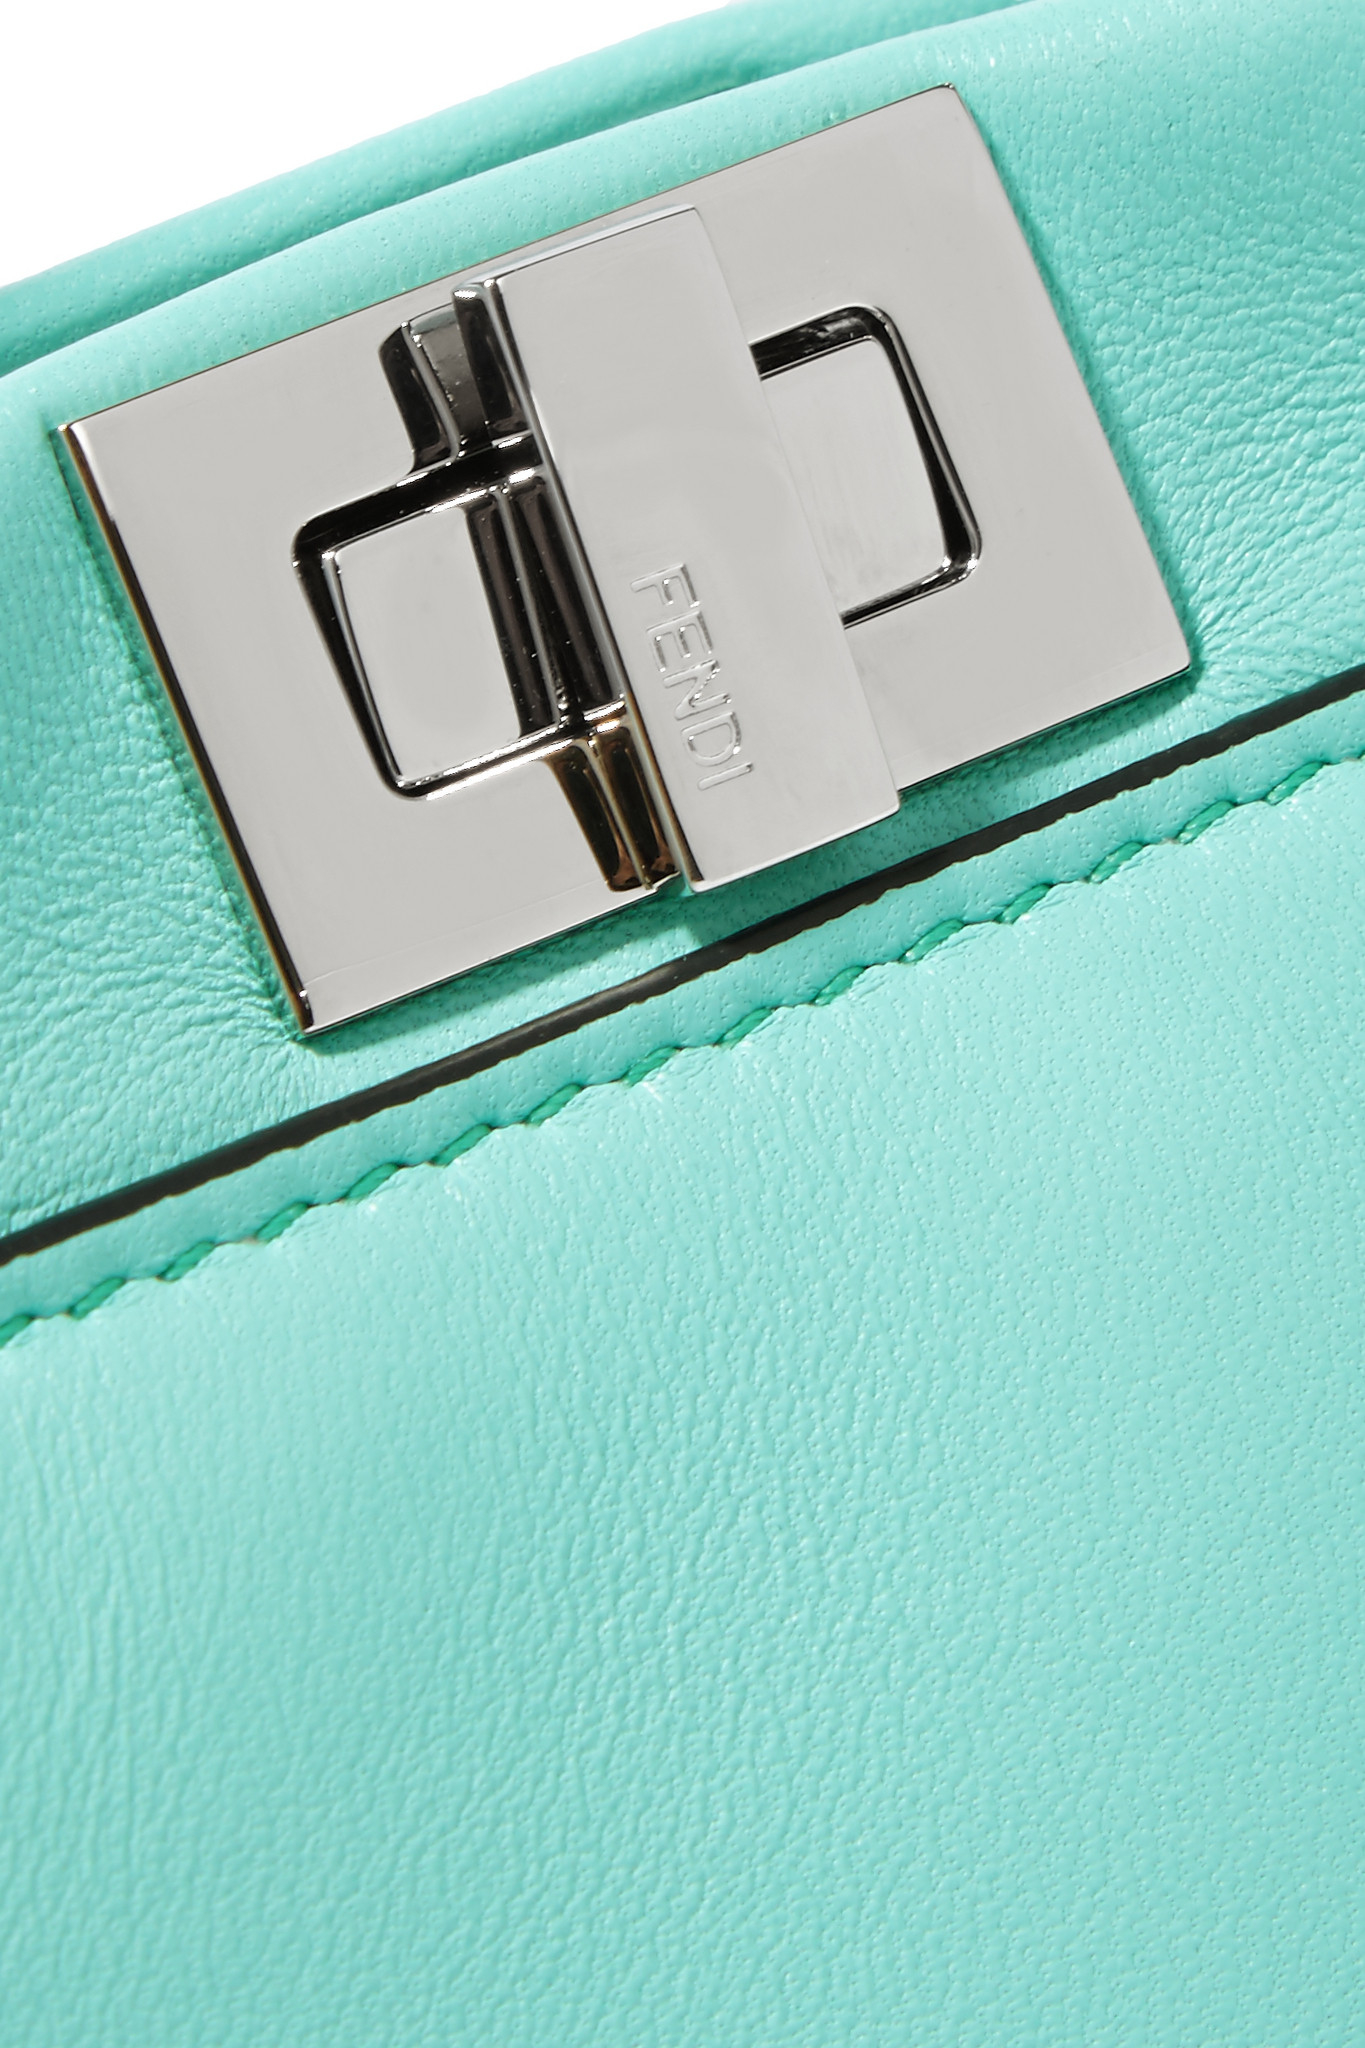 21066c748a82 fendi outlet online store - Fendi Peekaboo Micro Leather Shoulder Bag in  Blue (Turquoise)